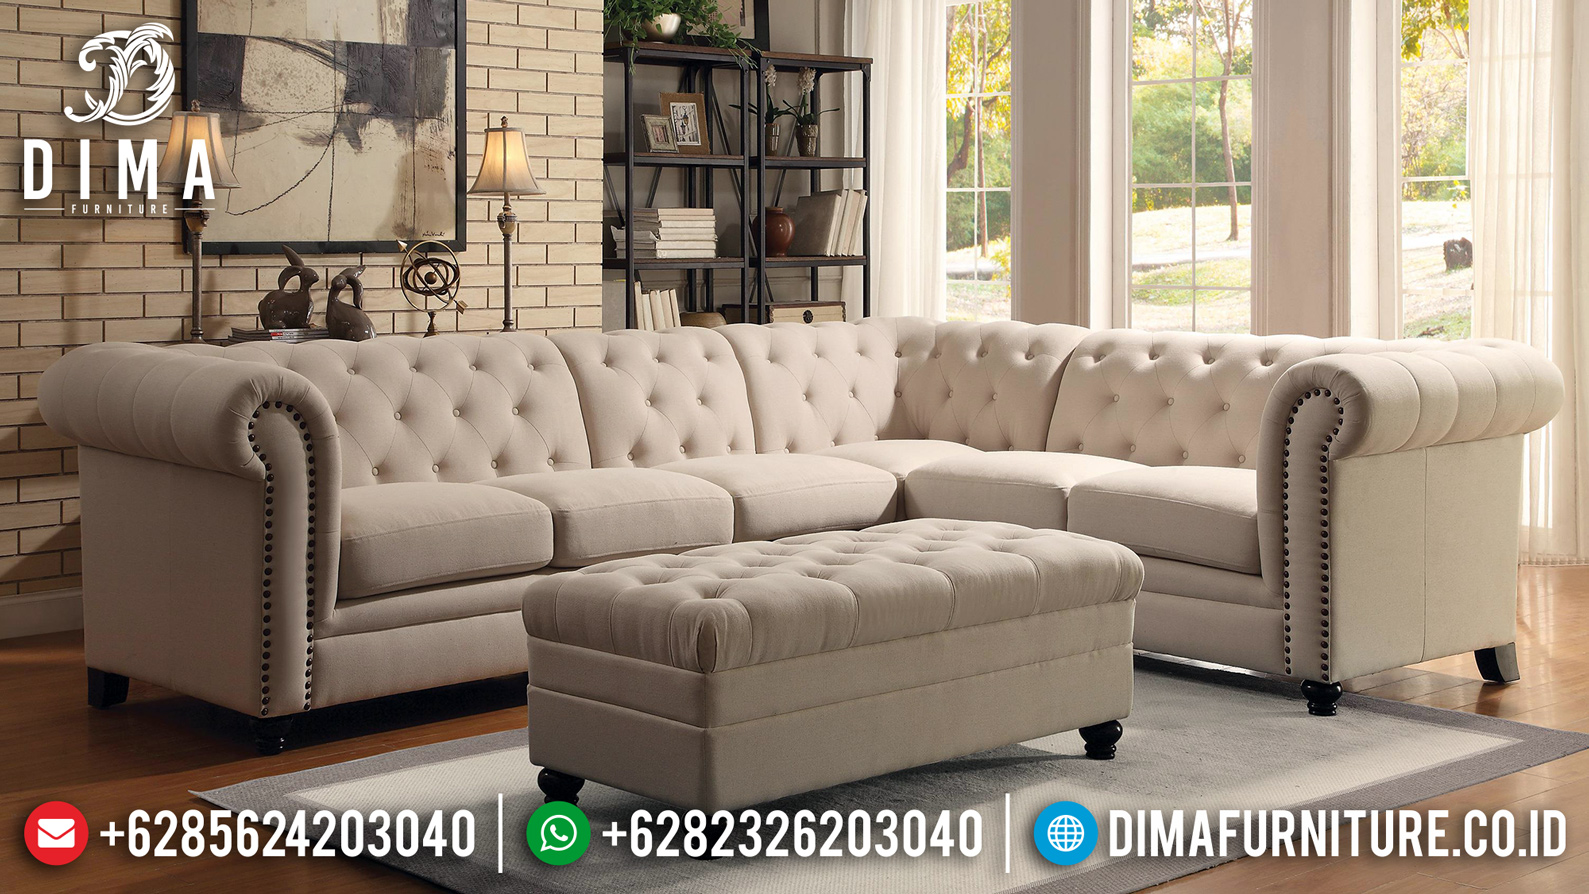 Sofa Tamu Minimalis Modern French Style Furniture Jepara MM-0694